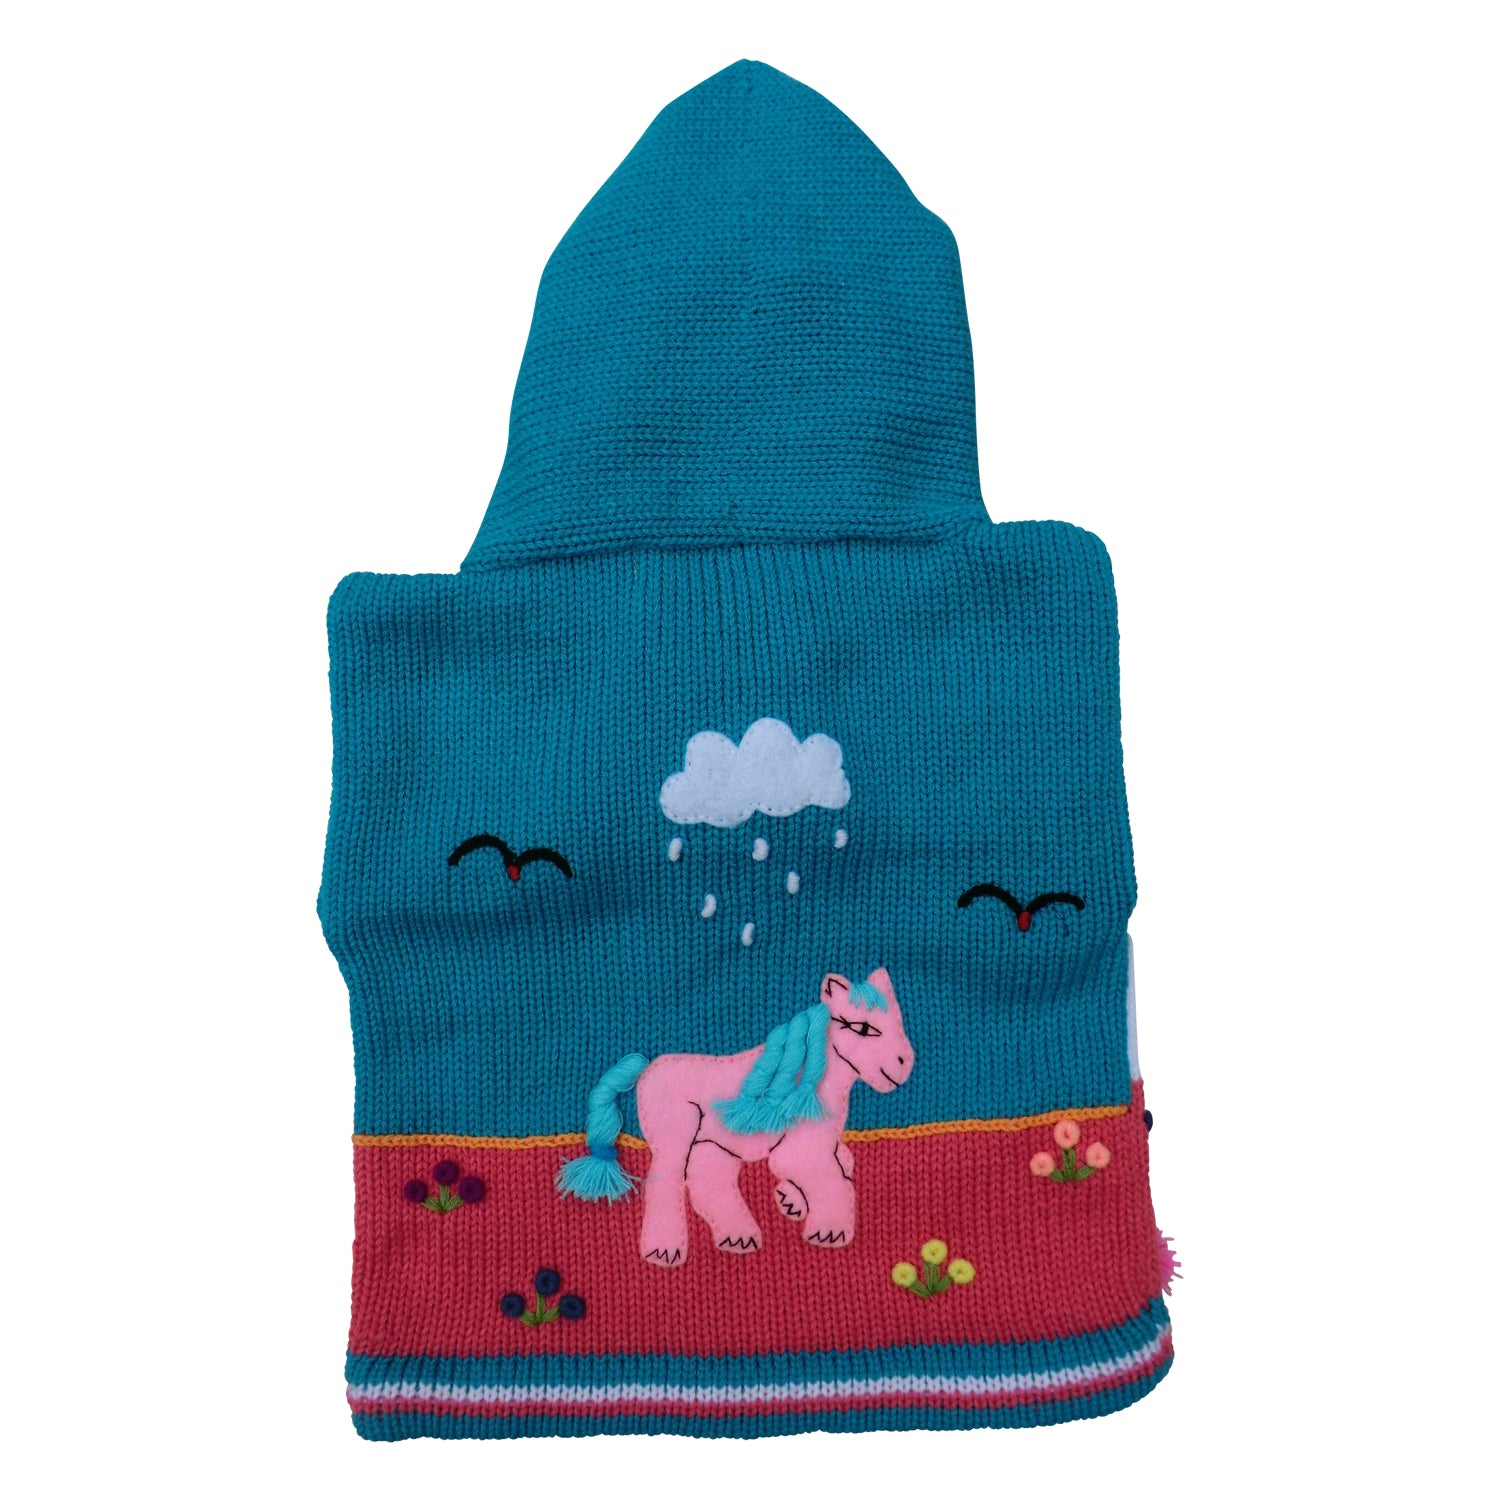 Children's Sea Green Cardigan - Pony - Matico